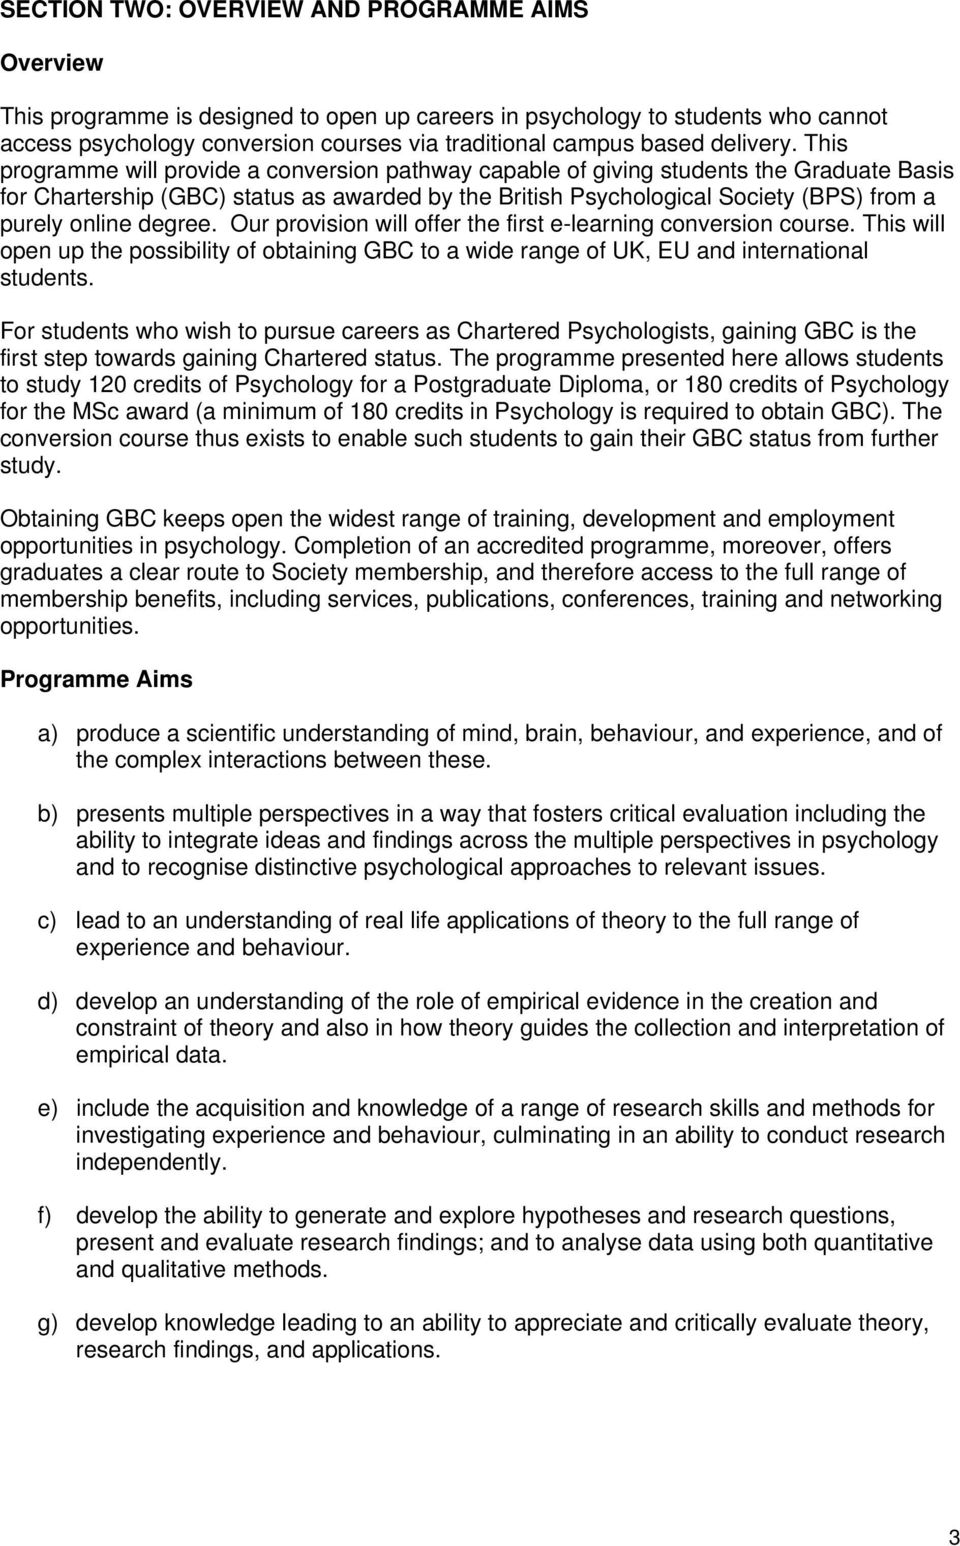 This programme will provide a conversion pathway capable of giving students the Graduate Basis for Chartership (GBC) status as awarded by the British Psychological Society (BPS) from a purely online